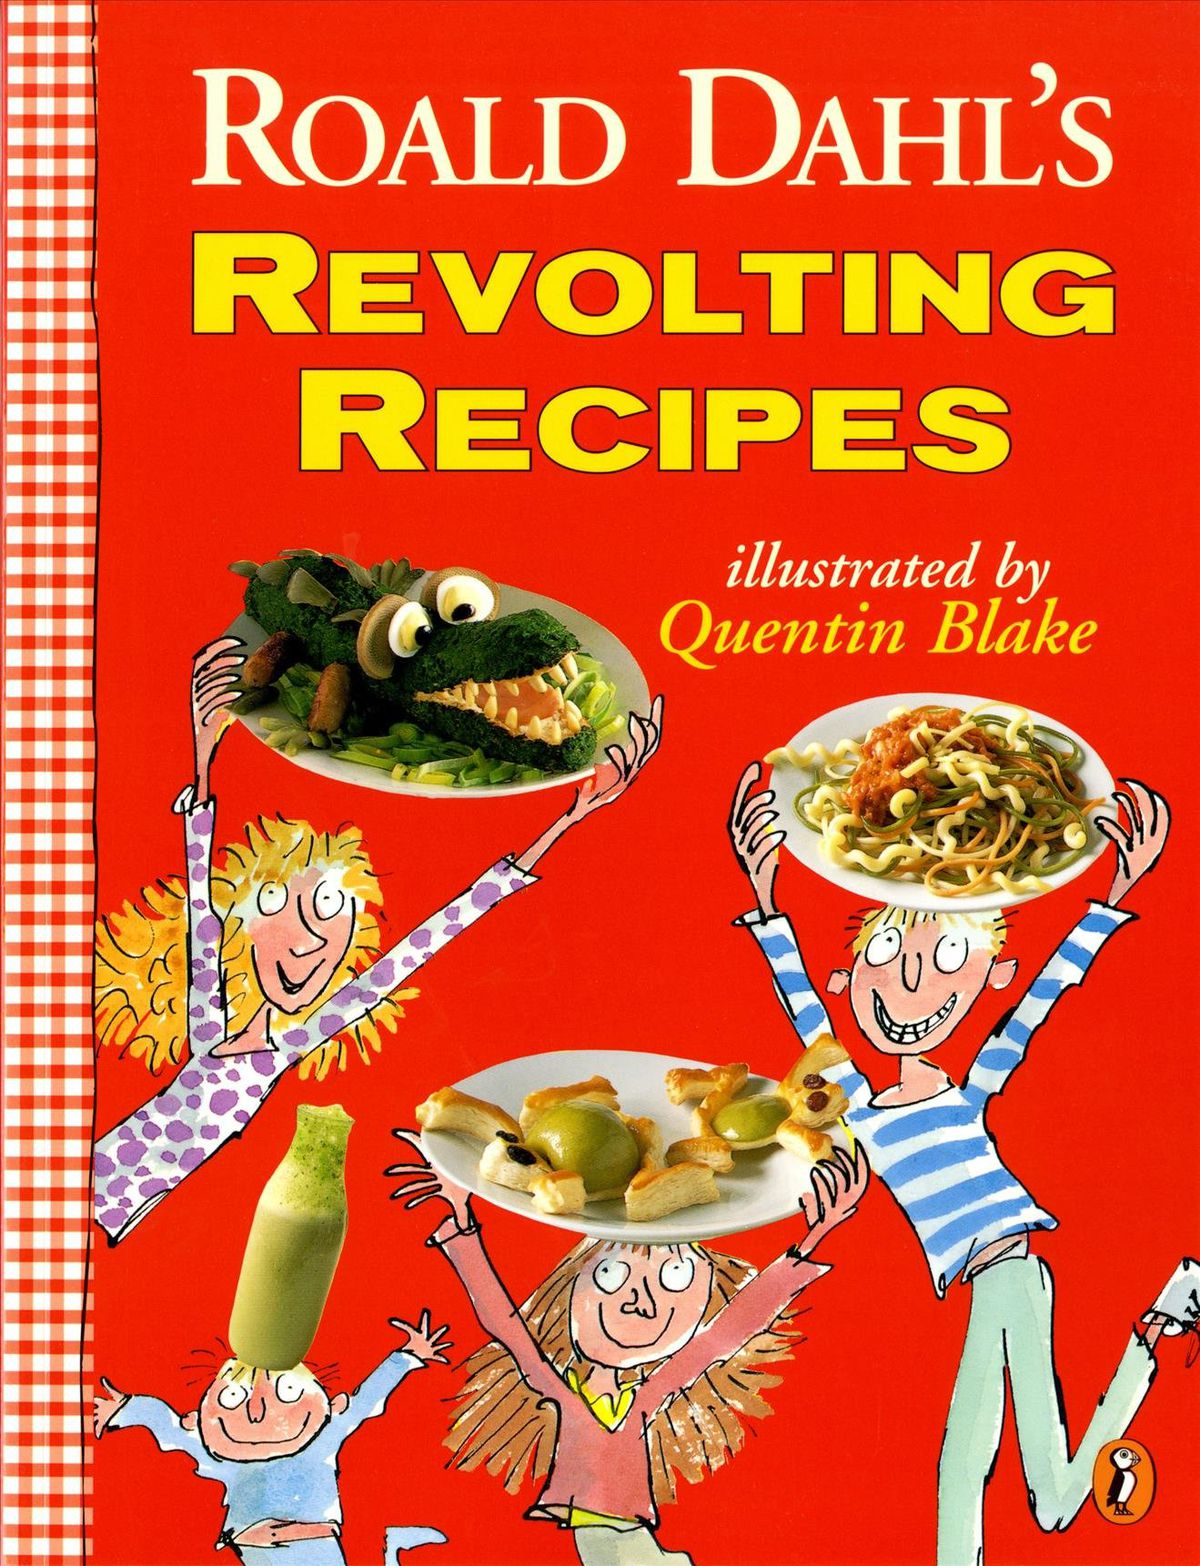 Revolting Recipes by Roald Dahl, one of the best cookbooks chosen by Eater writers